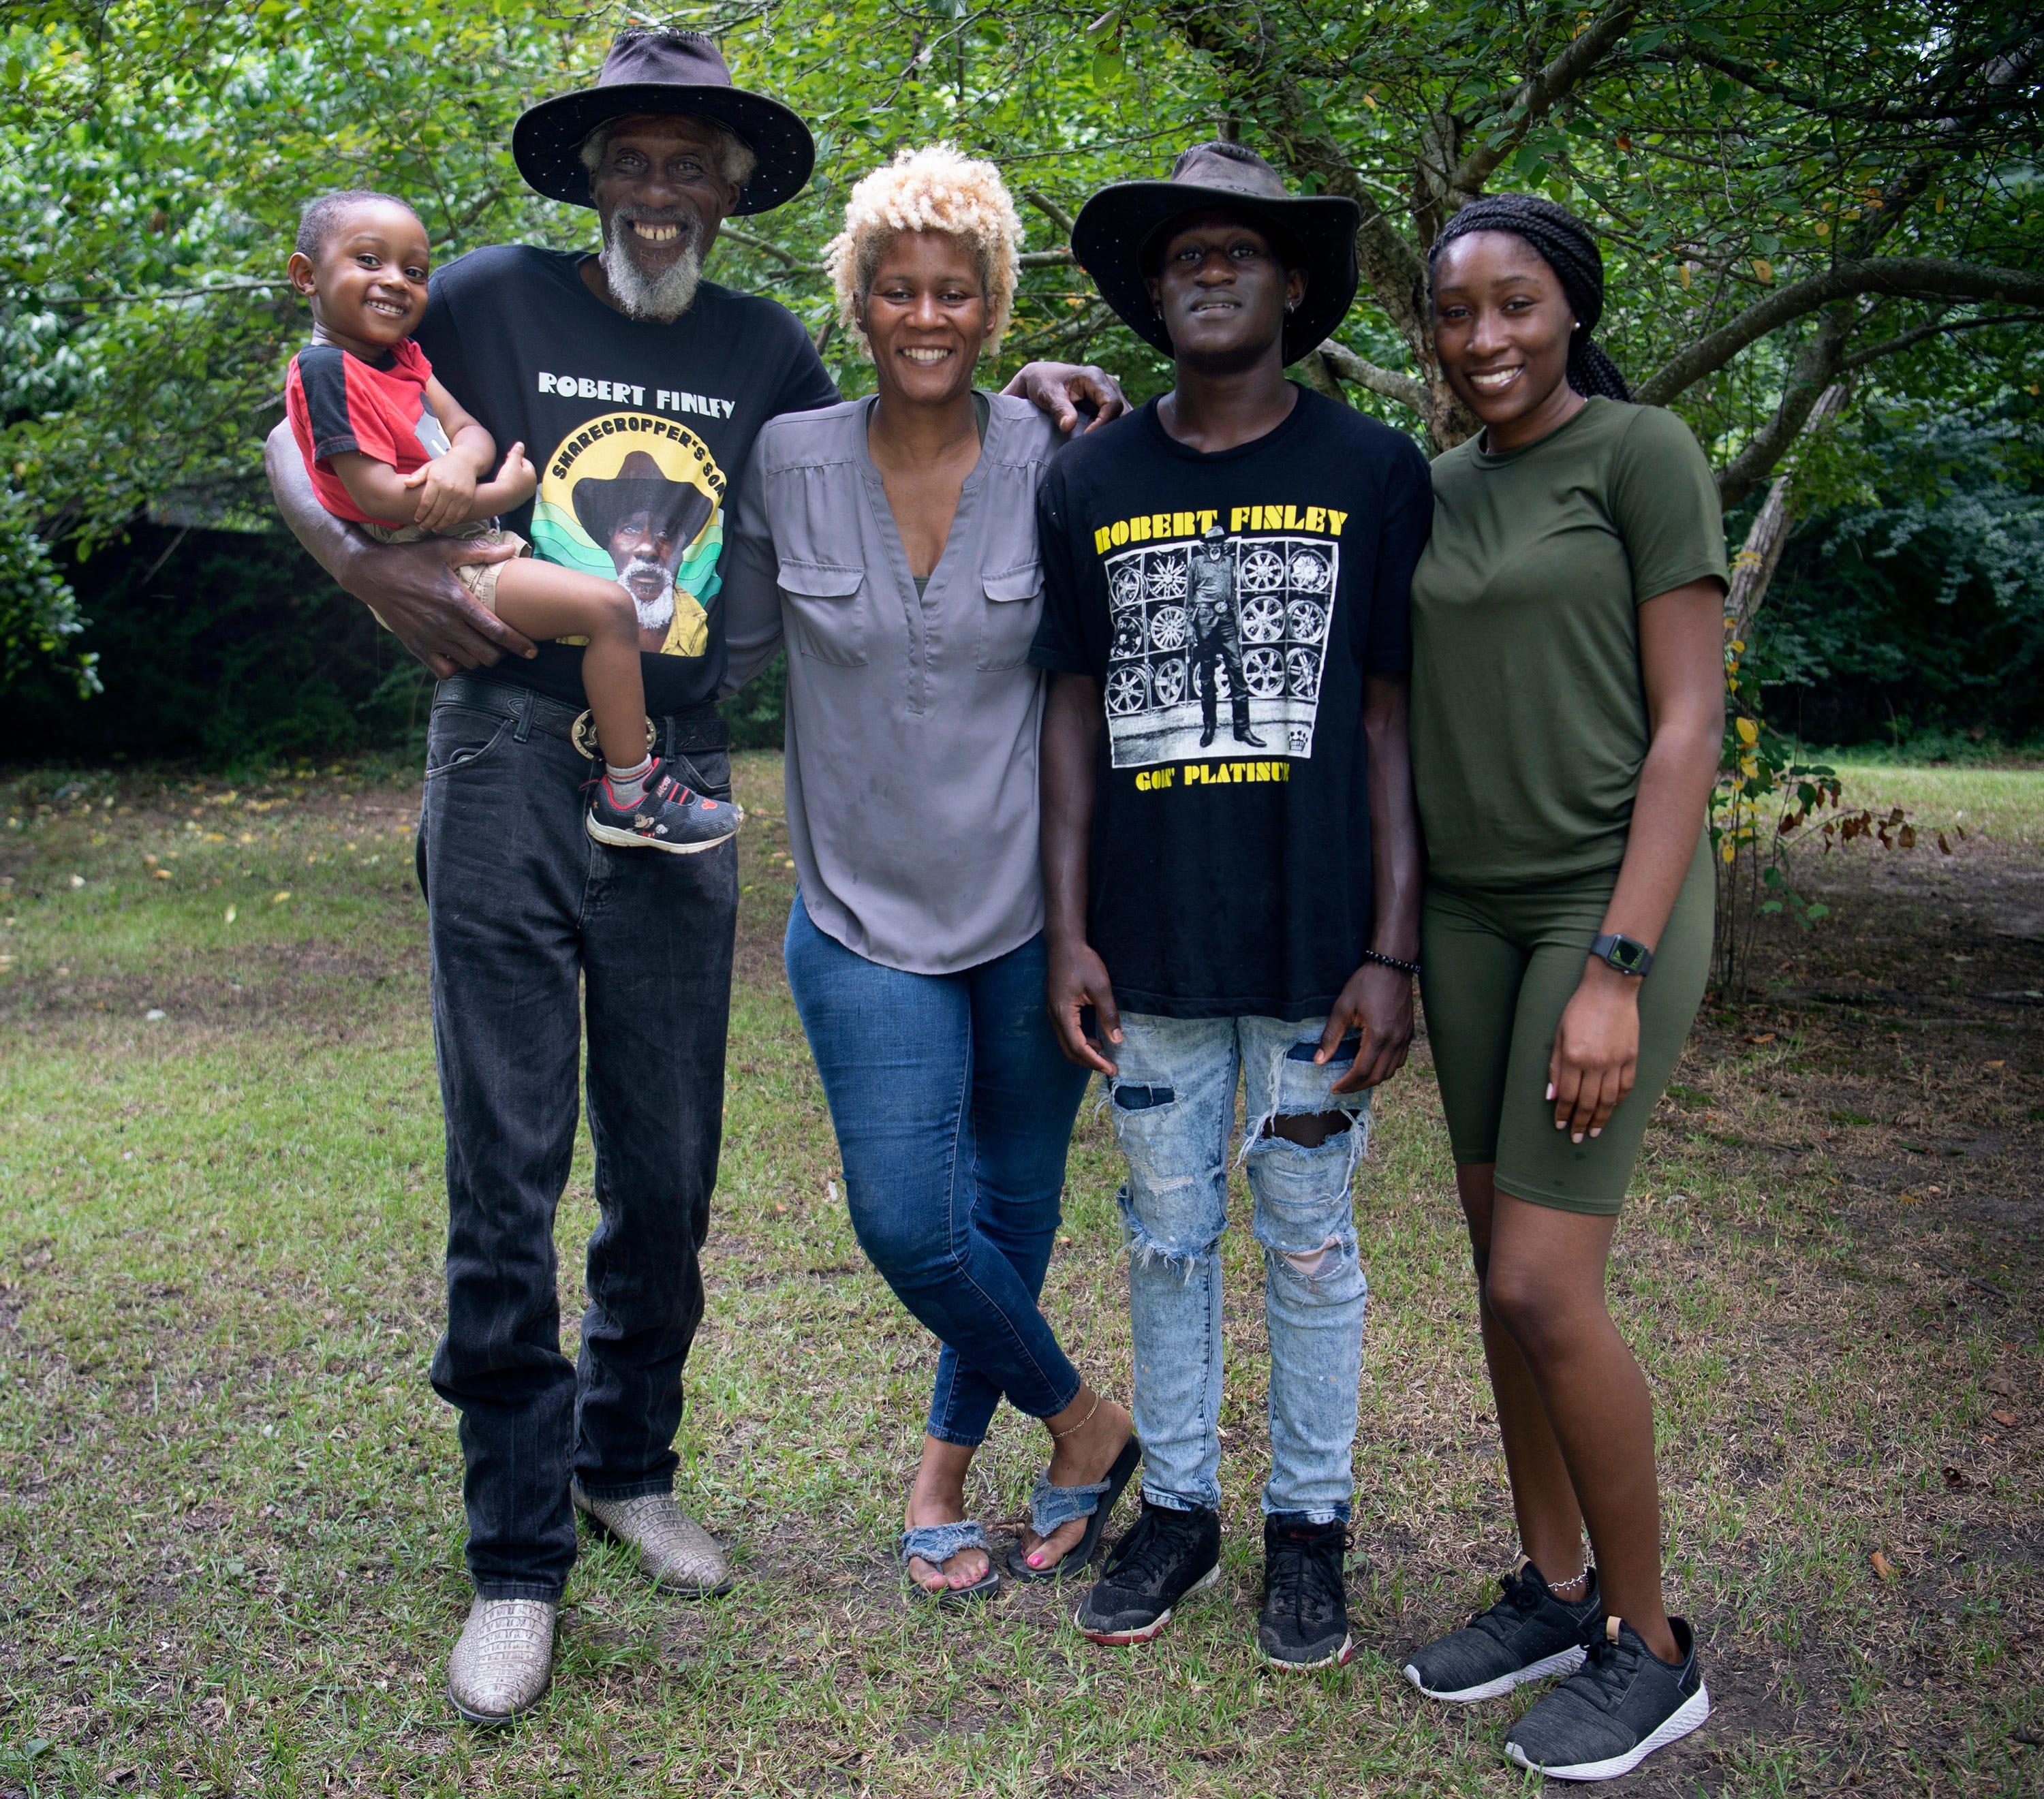 Robert Finley is close to the rest of his family in Bernice, Louisiana. Here he is with, from left. great-grandson Elijah McMahon, daughter Christy Johnson, and grandchildren Andre and LaQuindrelyn McMahon. Photographed Friday, July 16, 2021 in Bernice, La.